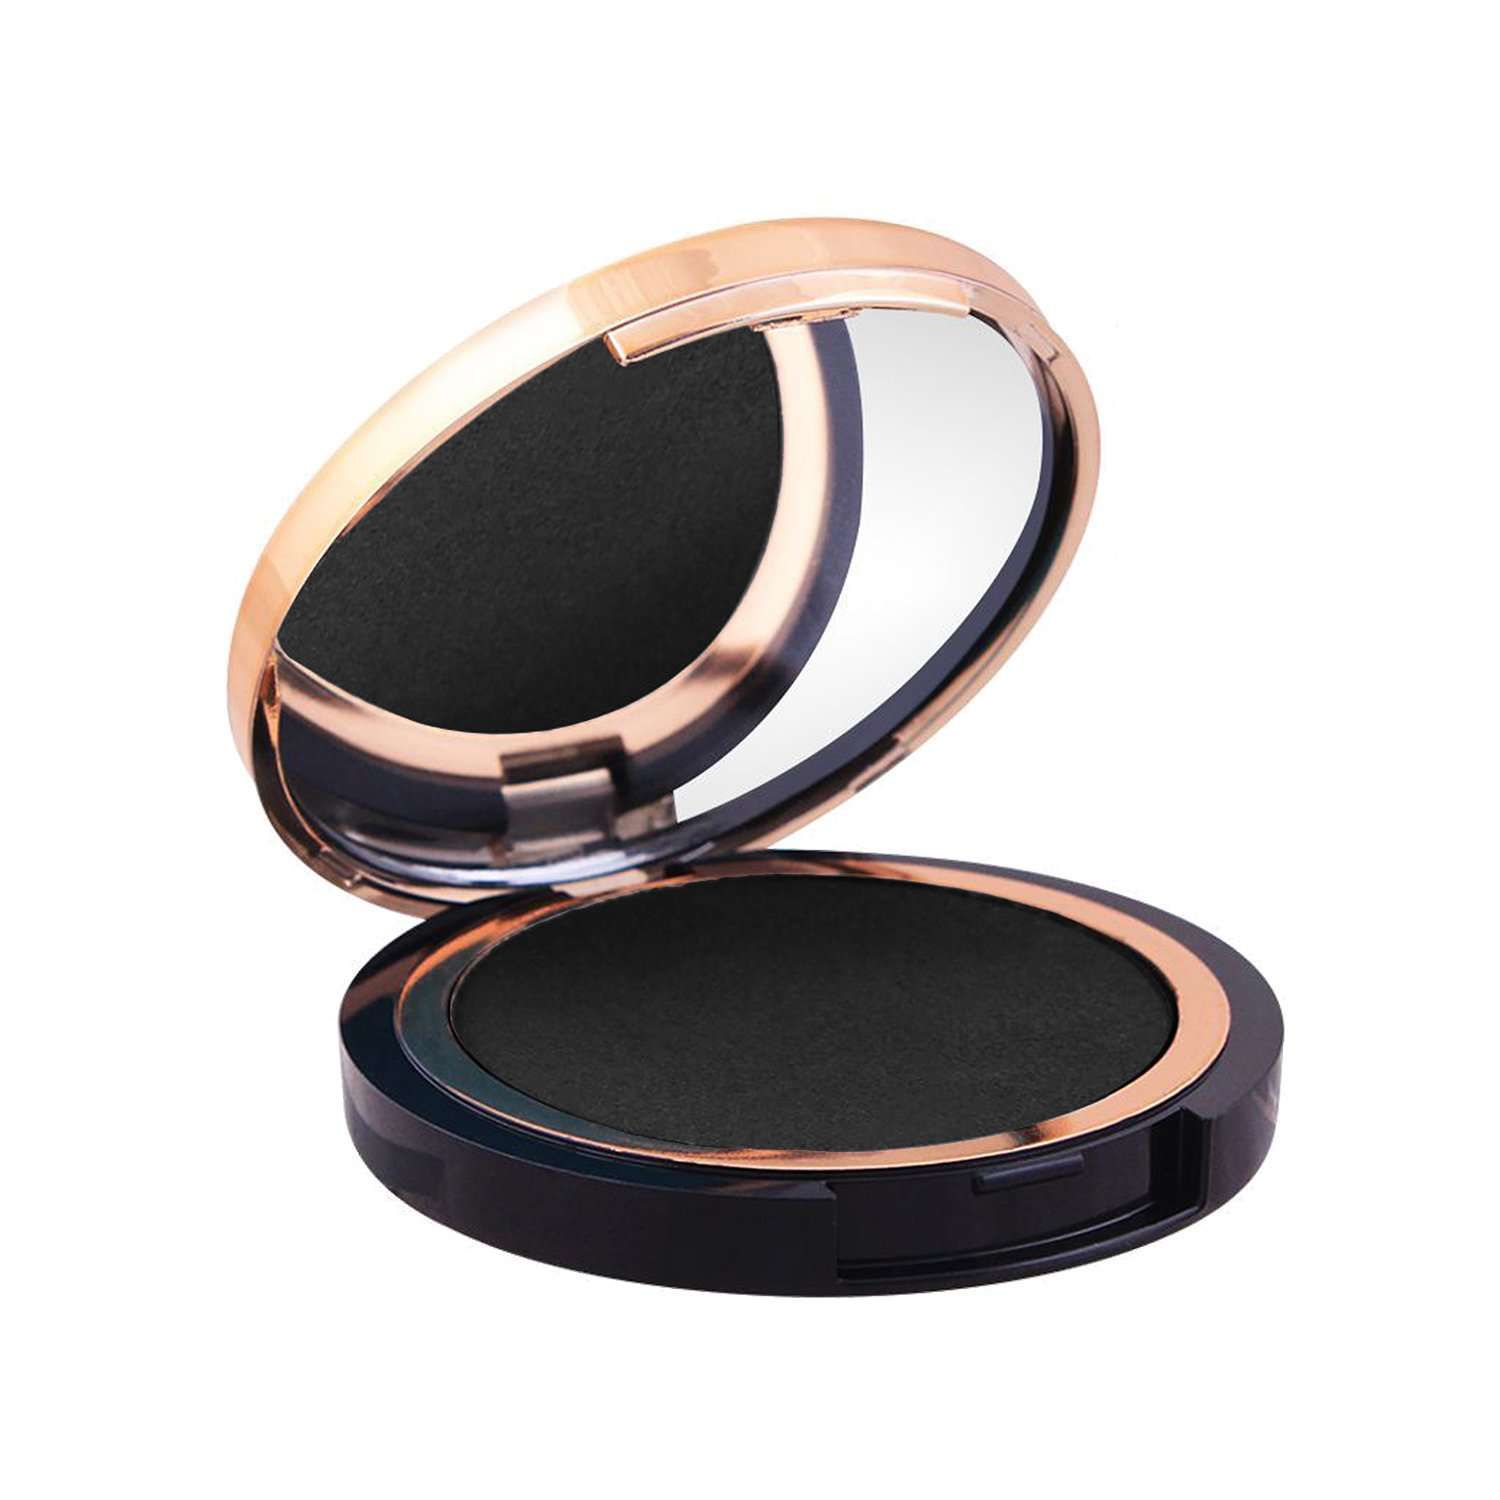 3D Lights Frosted Cream Eye Shadow - Carbon Matte